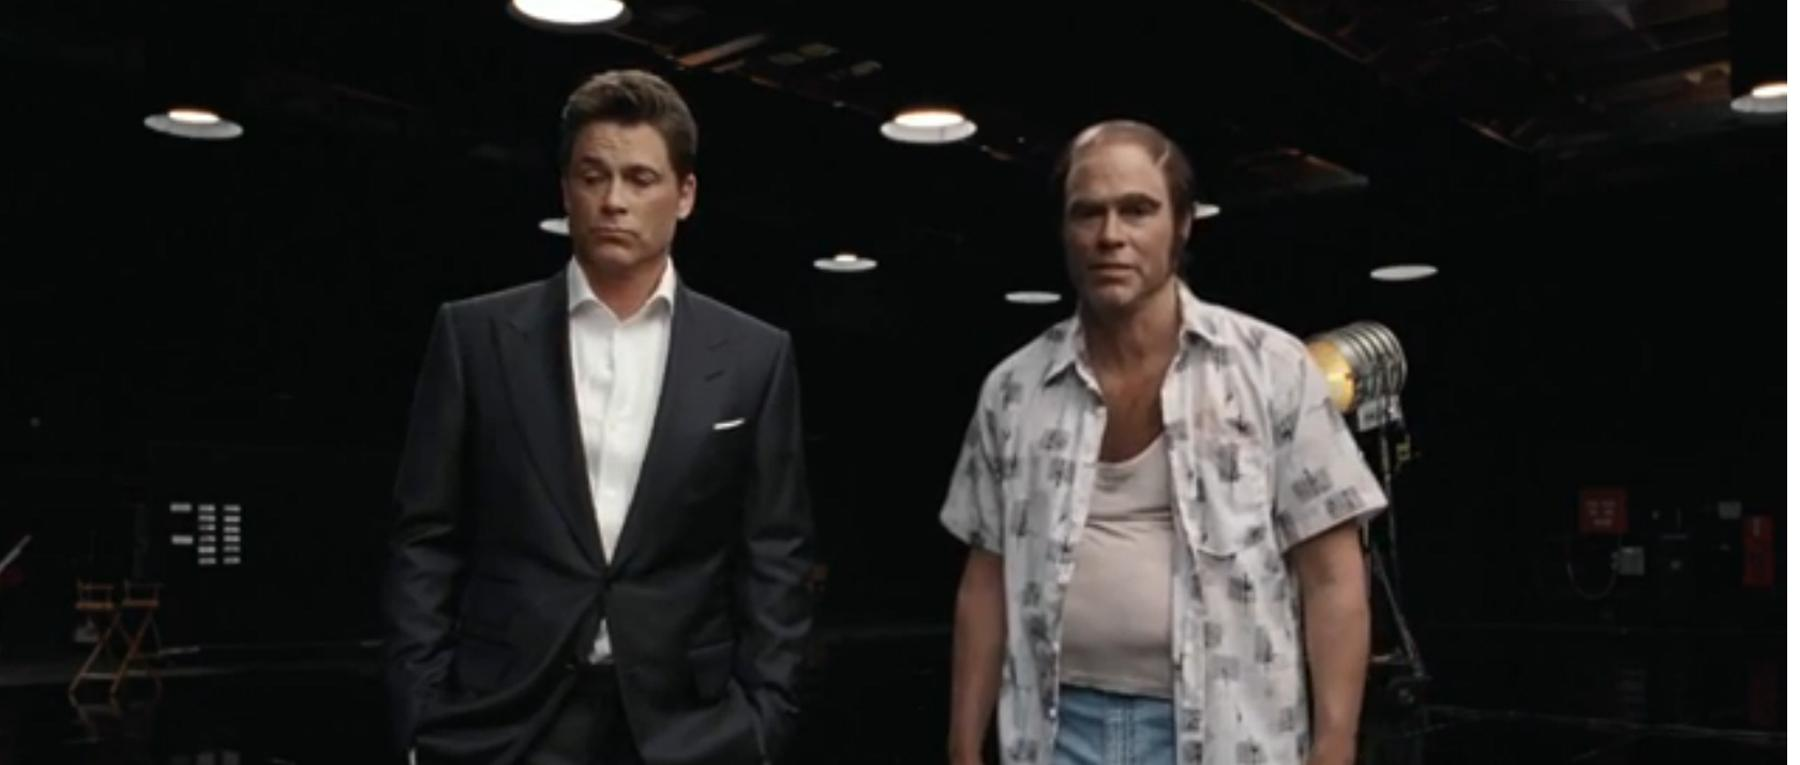 Rob Lowe is unbelievably hideous in this new DirecTV ad http://t.co/lmeQV1AUIL http://t.co/l5lVu2o60o